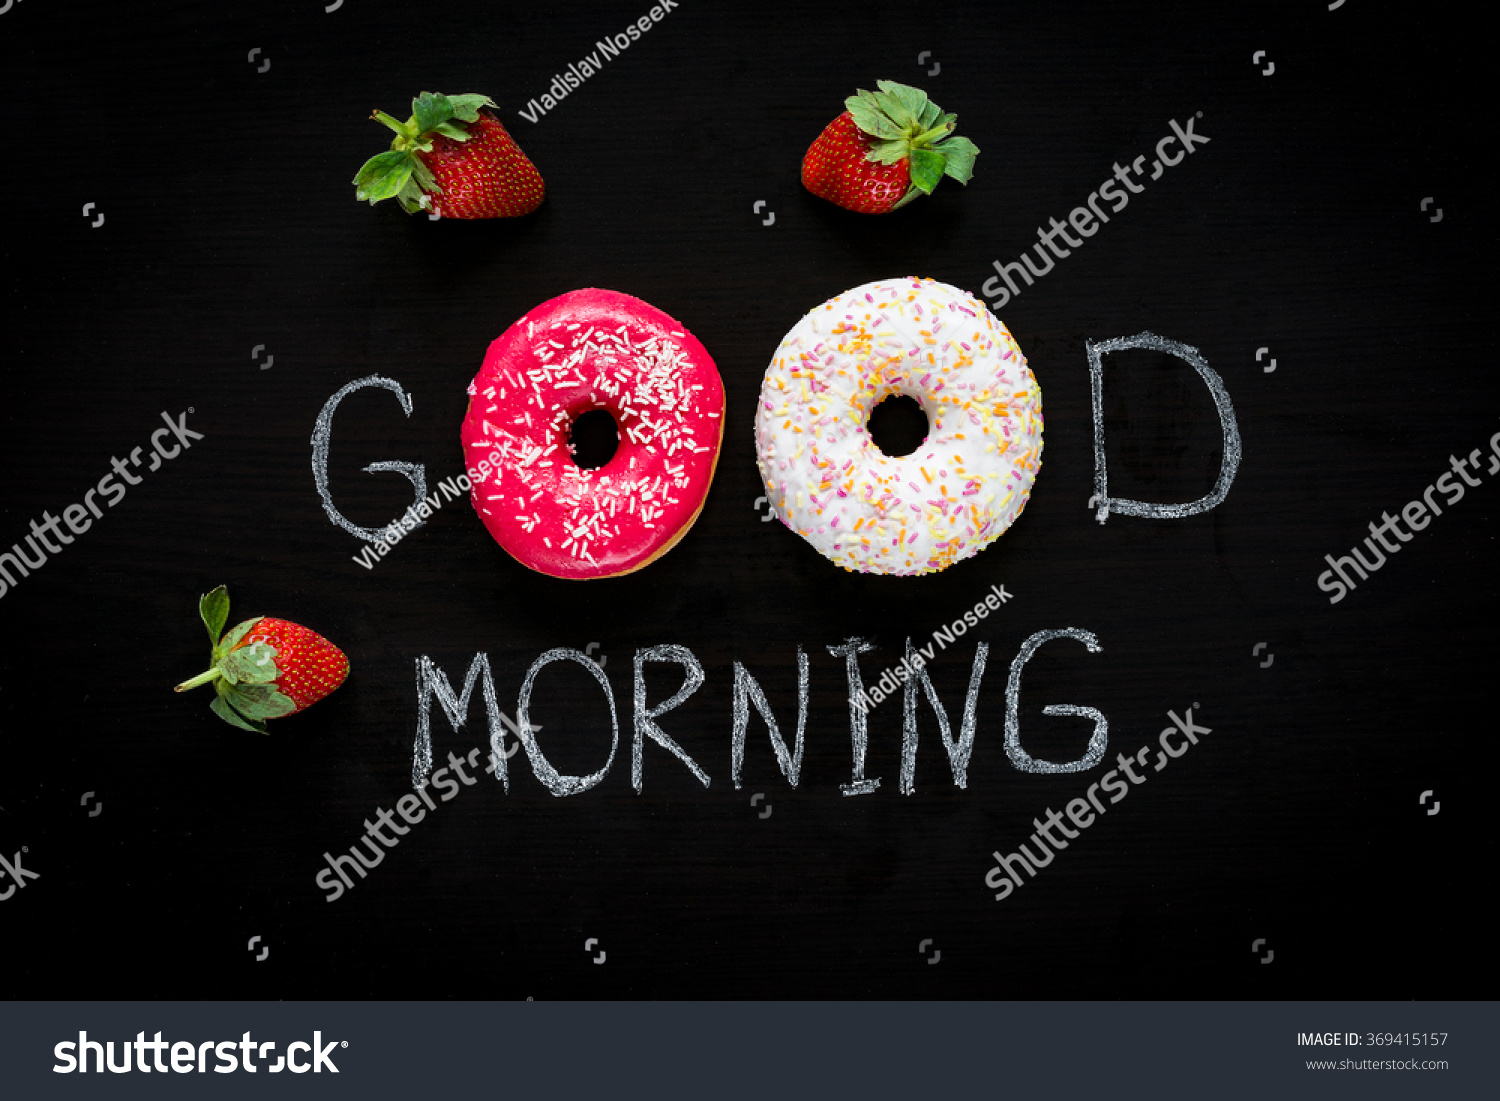 Donuts Strawberries Good Morning Greeting Written Stock Photo Edit